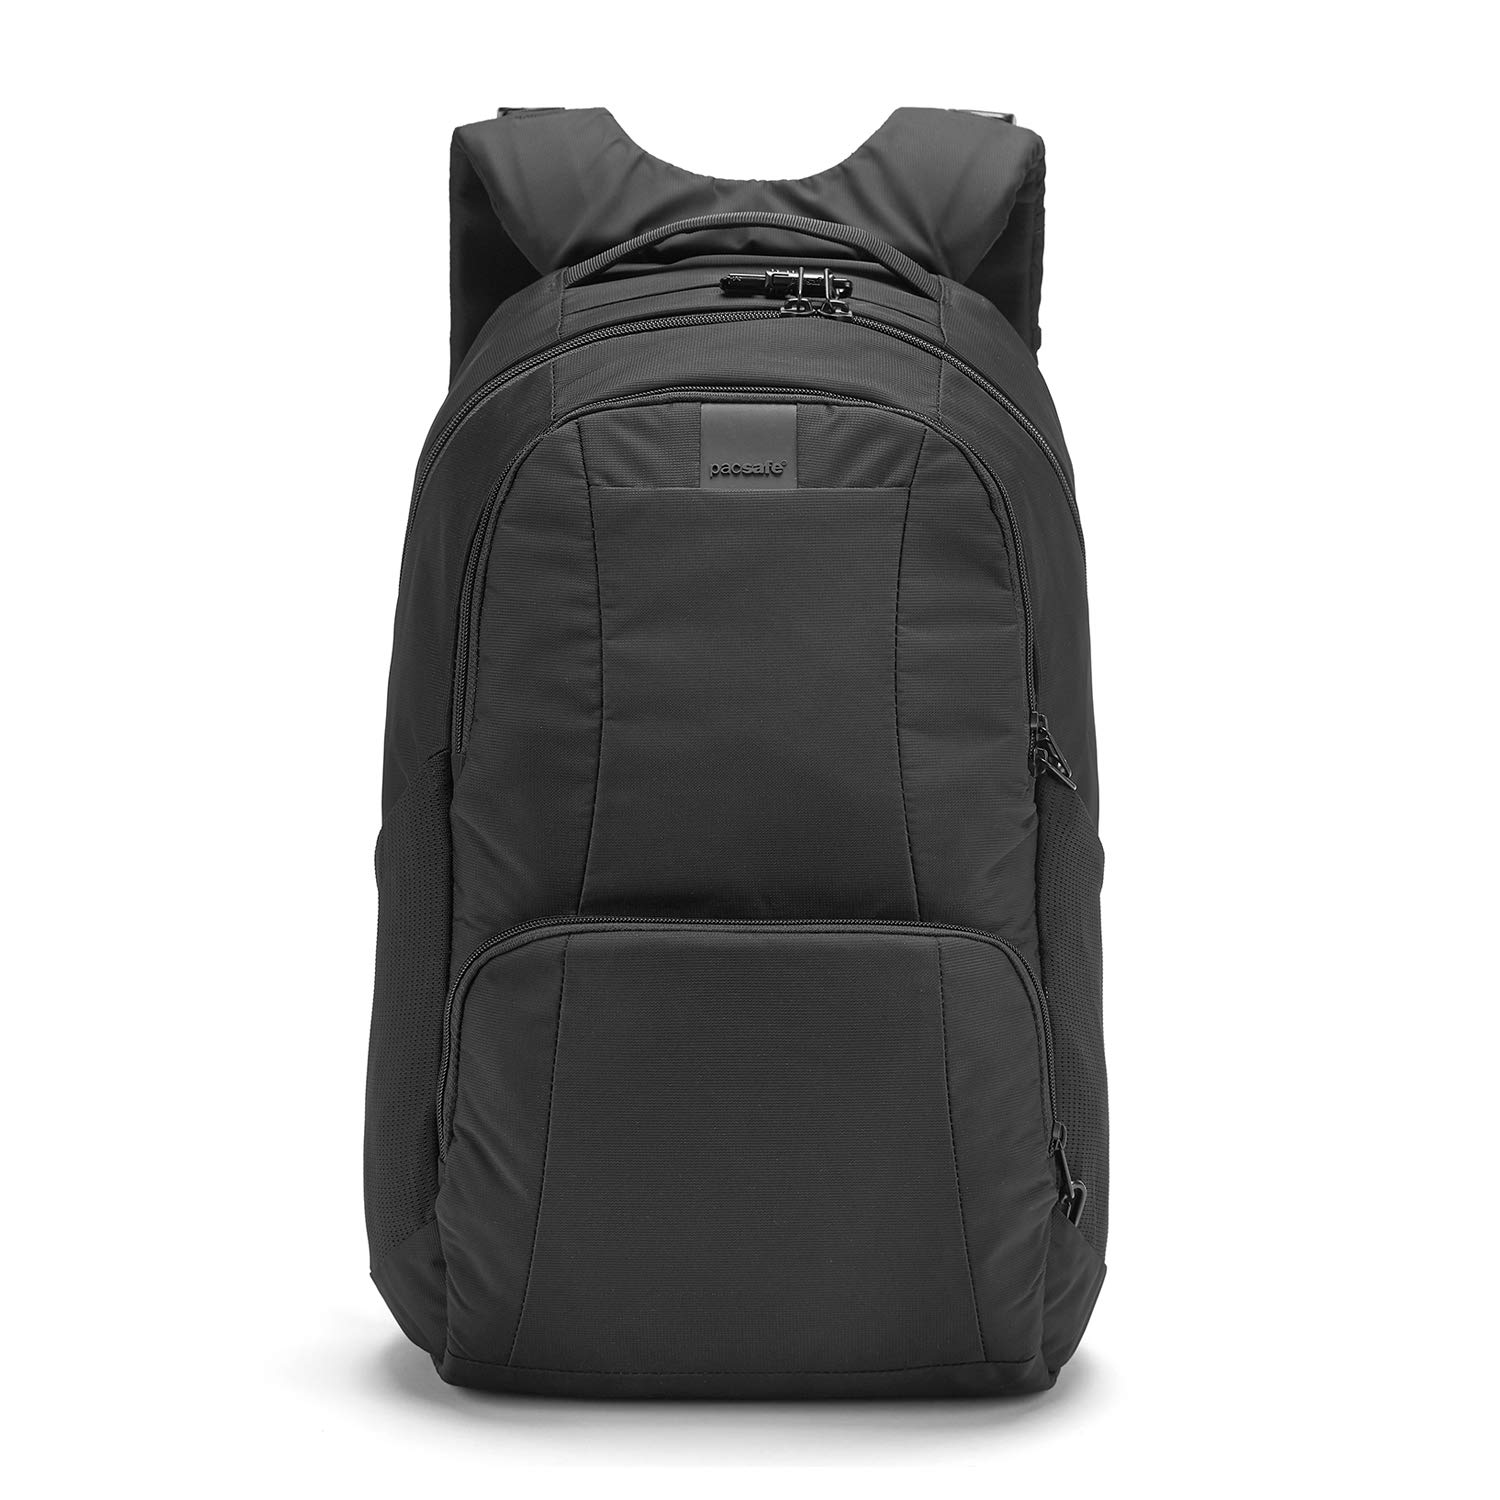 Pacsafe Metrosafe LS450 25 Liter Anti Theft Laptop Backpack - with Padded 15'' Laptop Sleeve, Adjustable Shoulder Straps, Patented Security Technology (Black) by Pacsafe